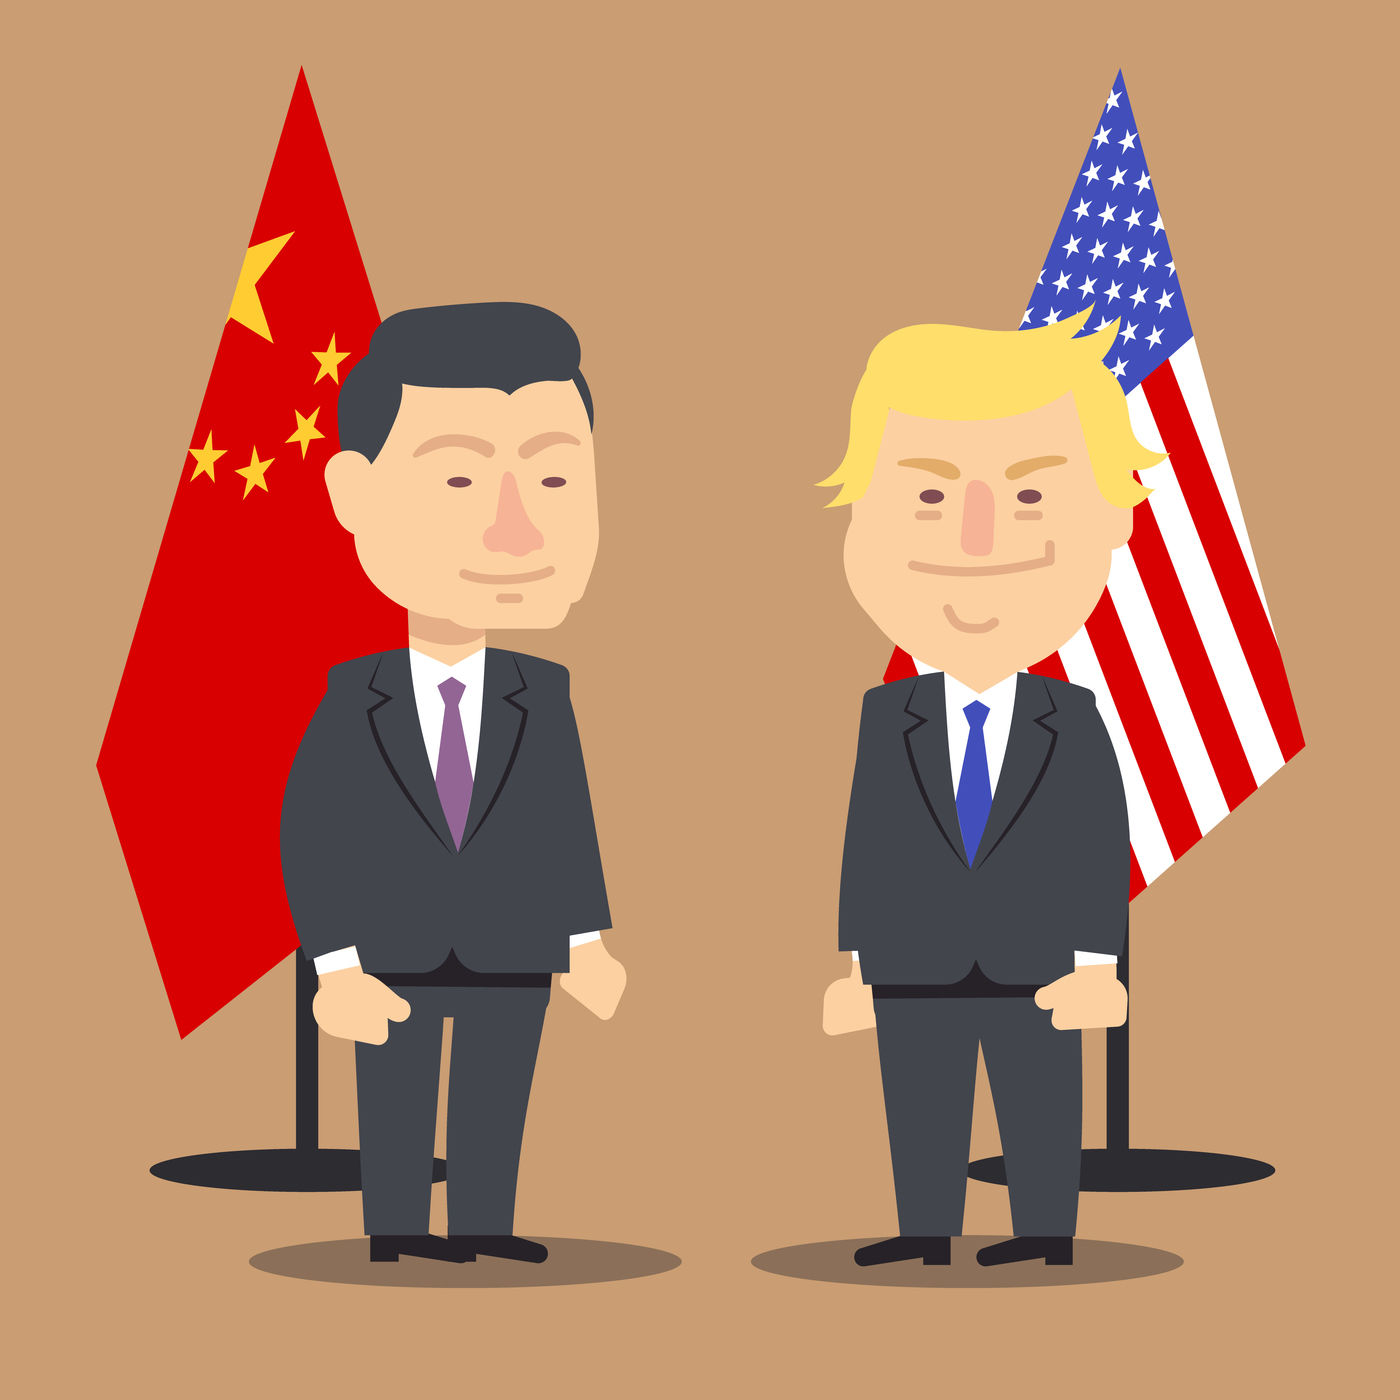 Xi Jinping And Donald Trump Standing Together With China And Usa